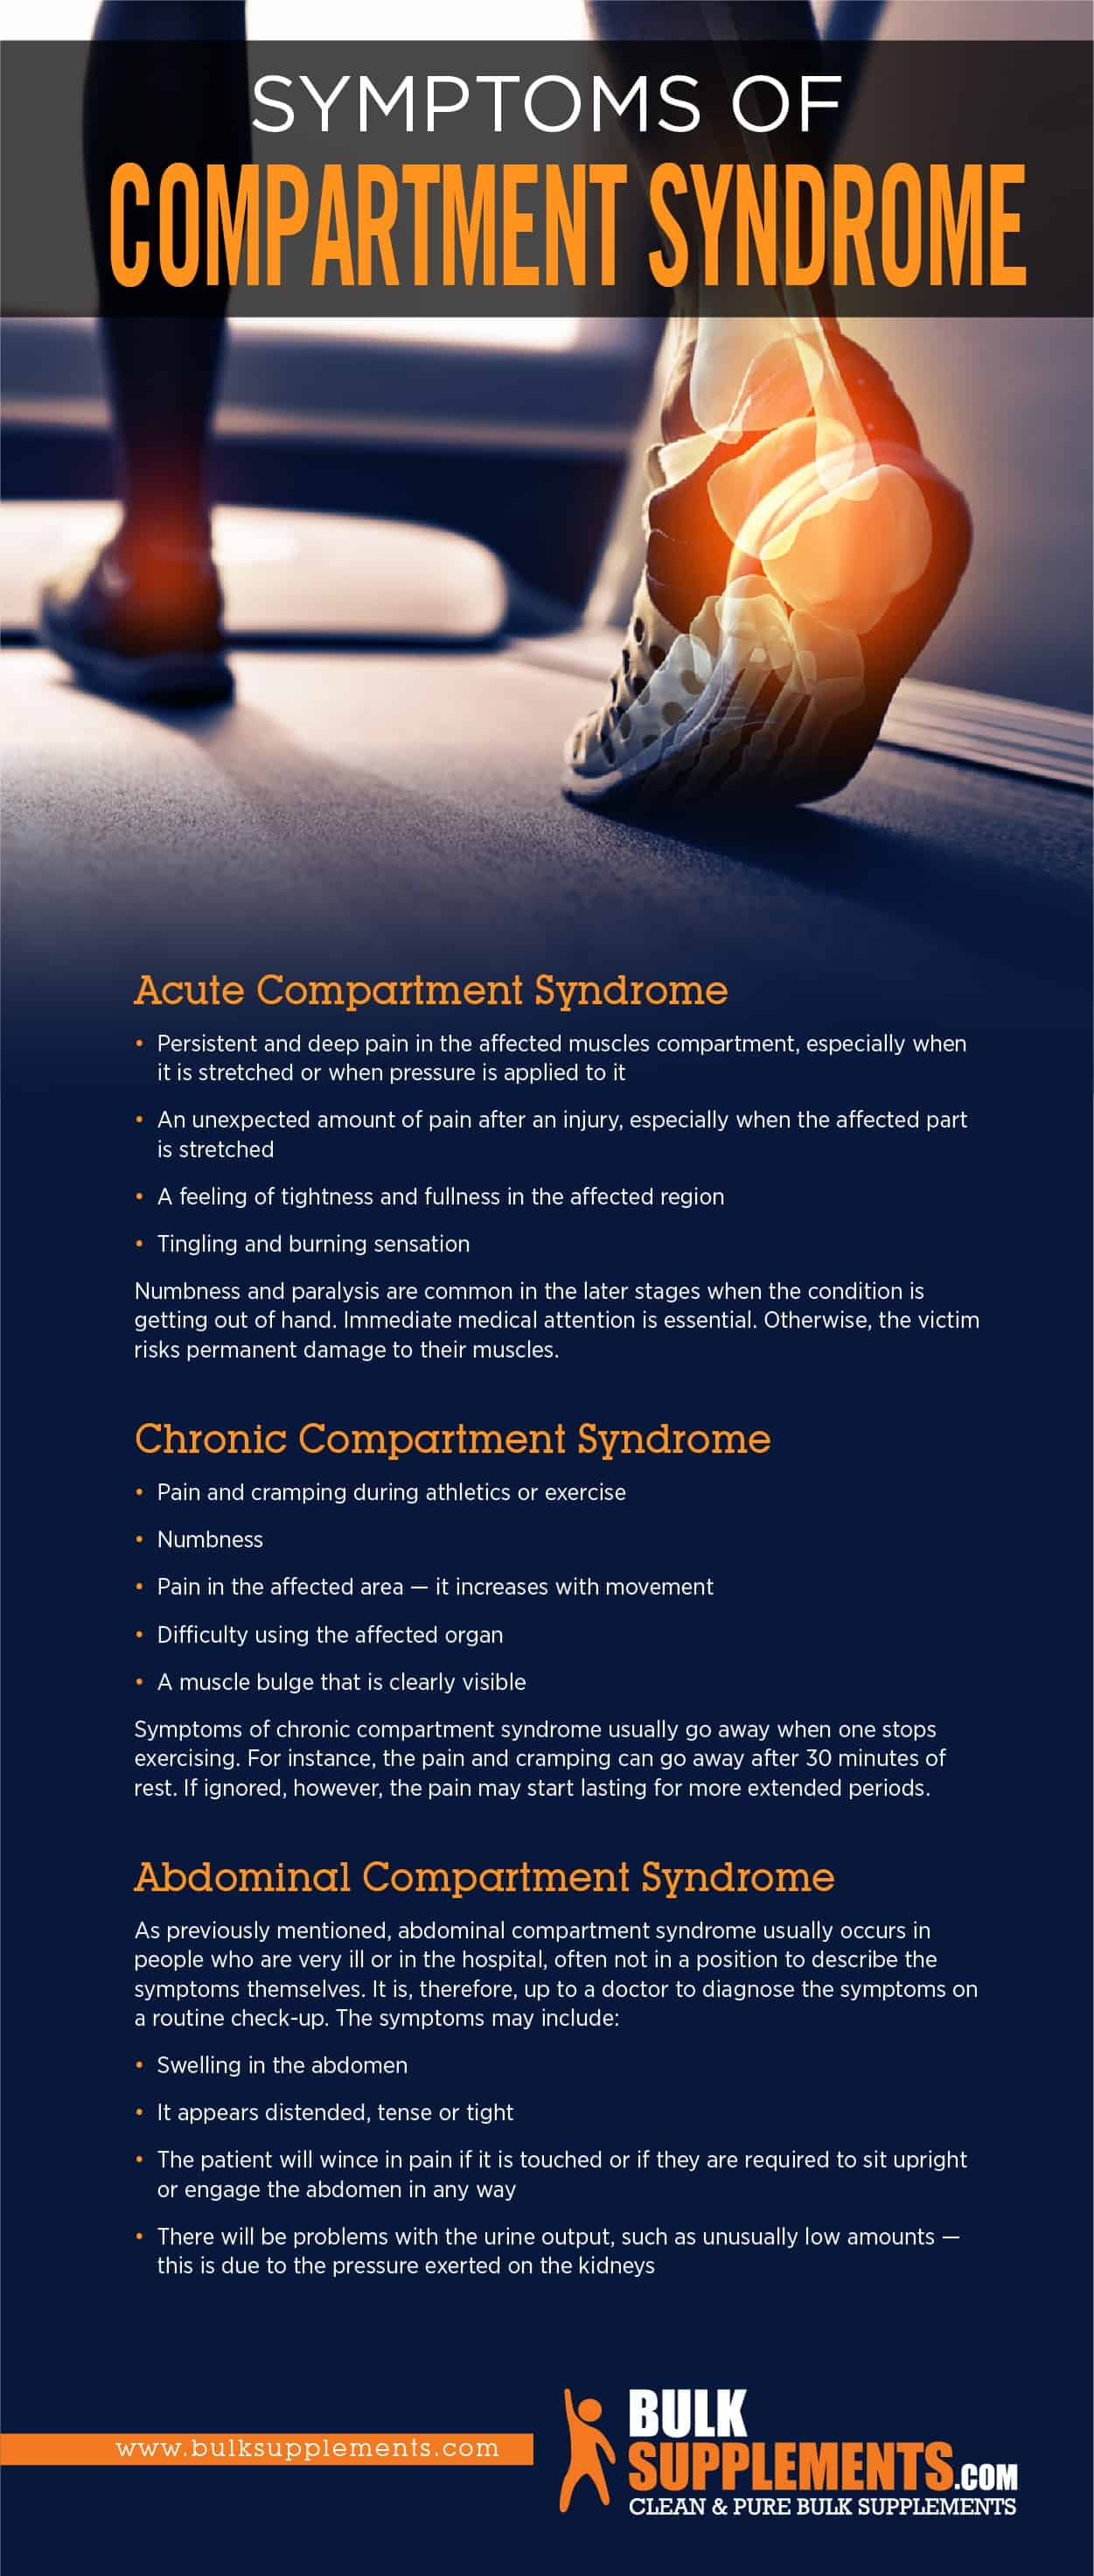 Compartment Syndrome Symptoms